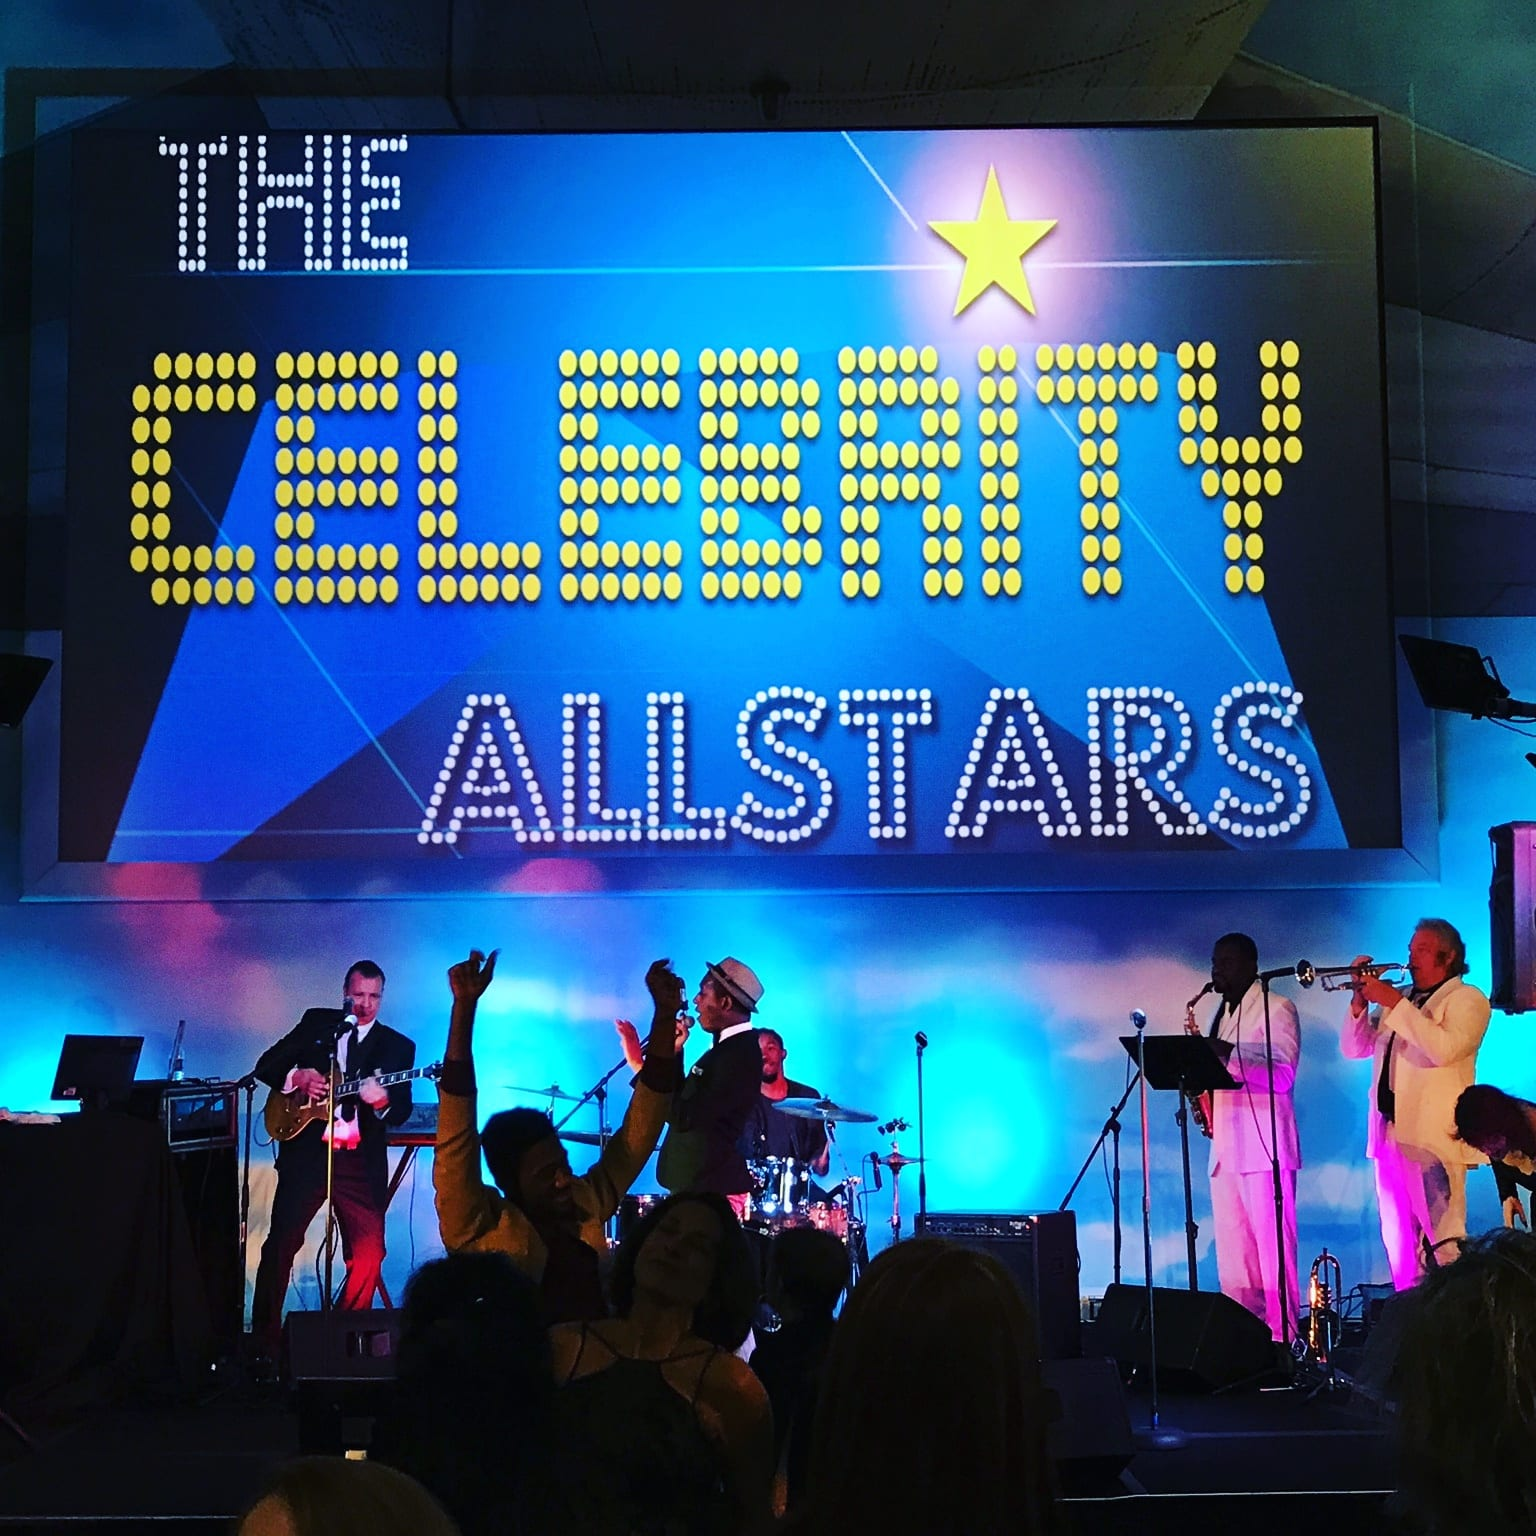 celebrity_allstarsdancebandphoto_1